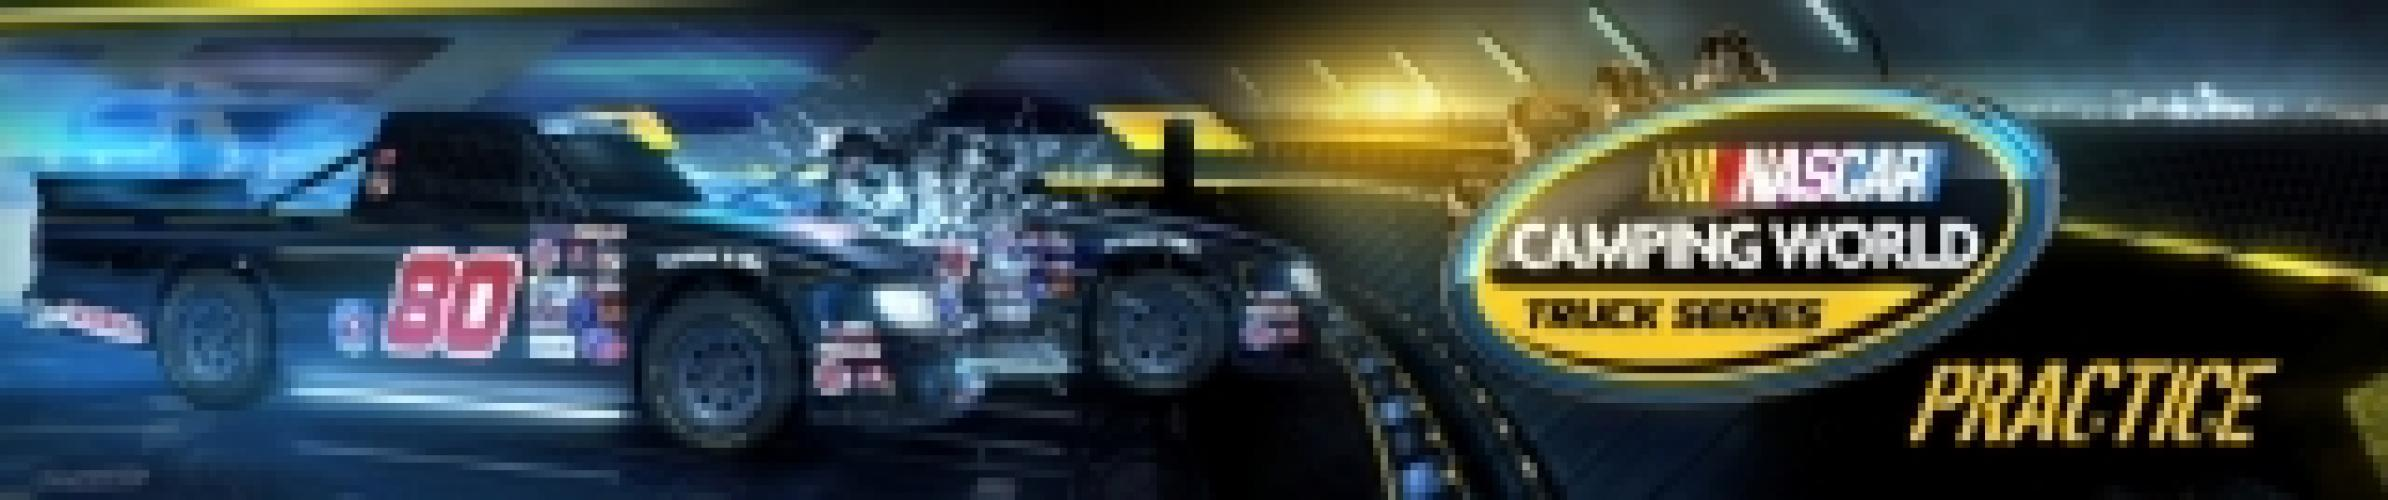 NASCAR Camping World Truck Series Practice next episode air date poster